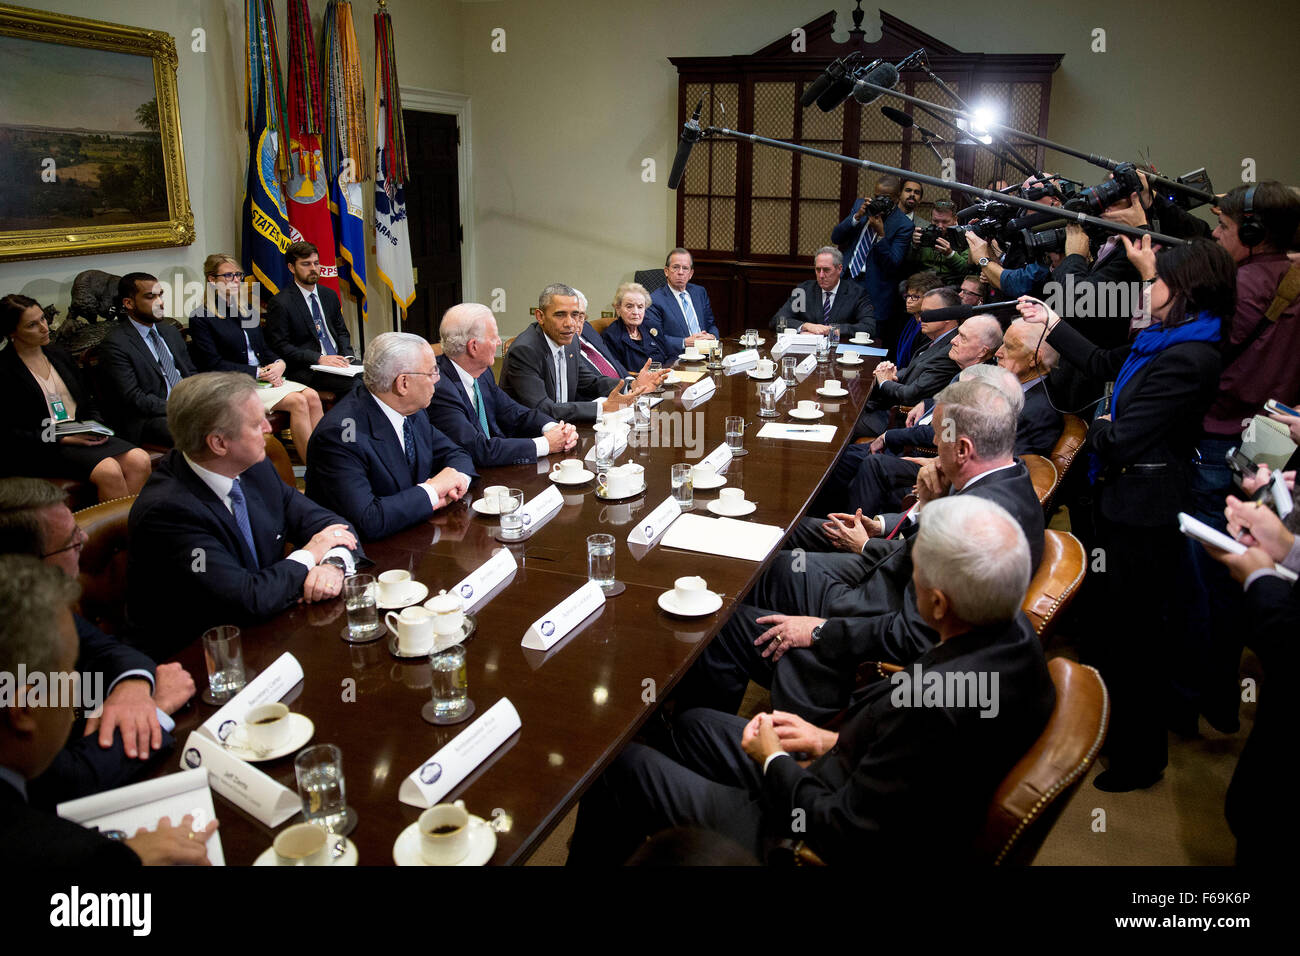 United States President Barack Obama, center, speaks while meeting with current and former diplomatic and national - Stock Image